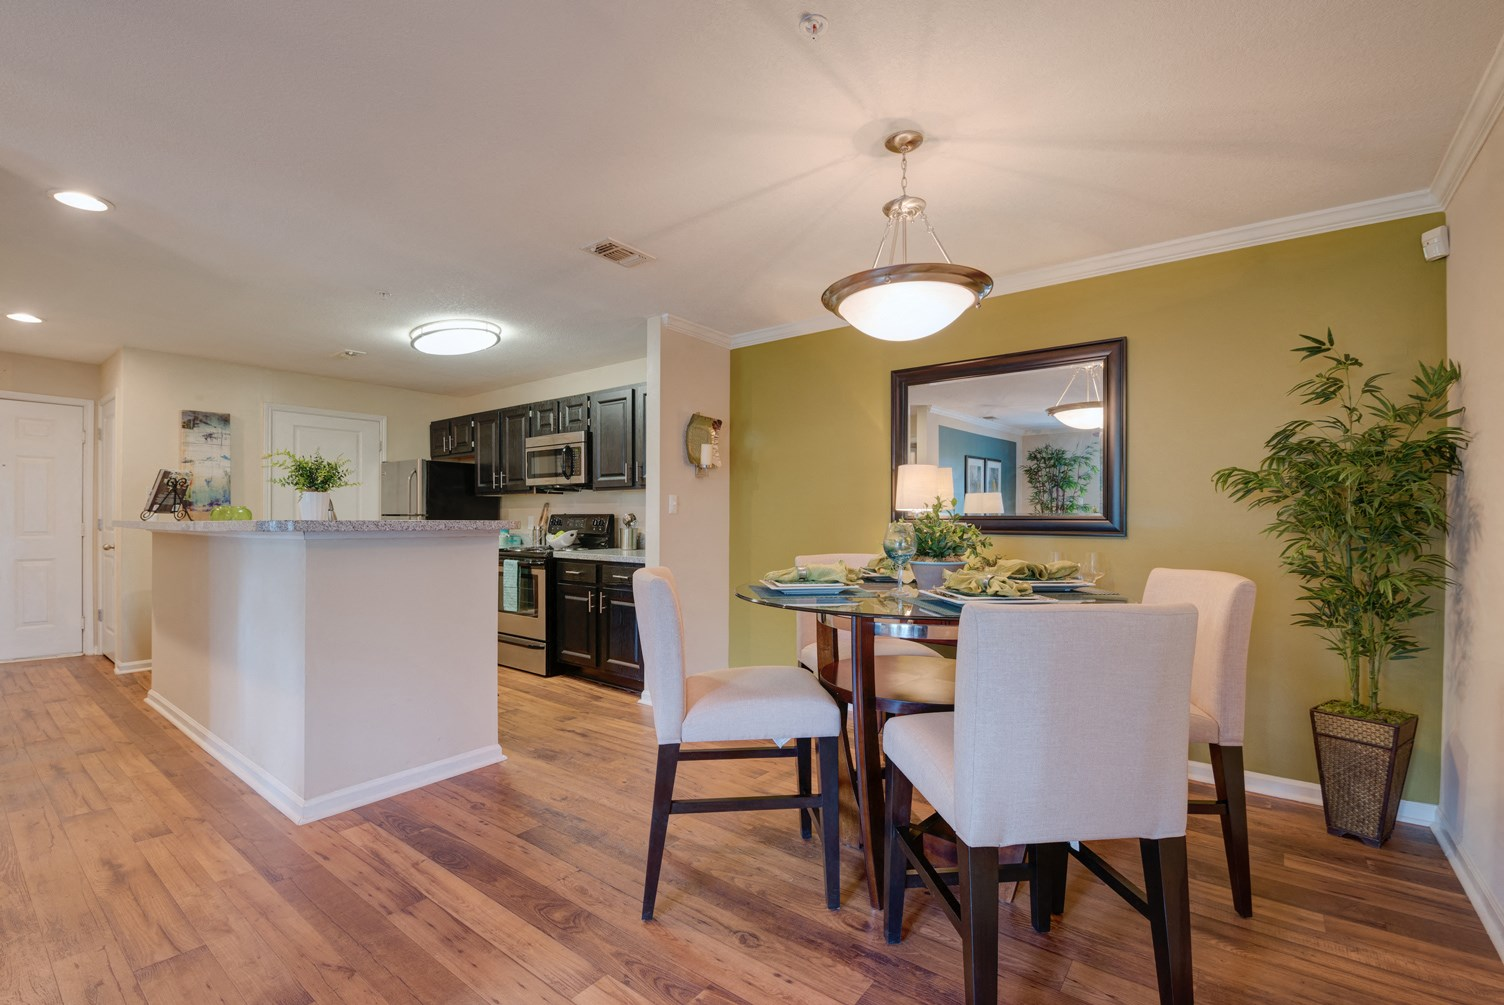 Kitchen and Dining Area at 150 Summit Apartments in Birmingham, AL